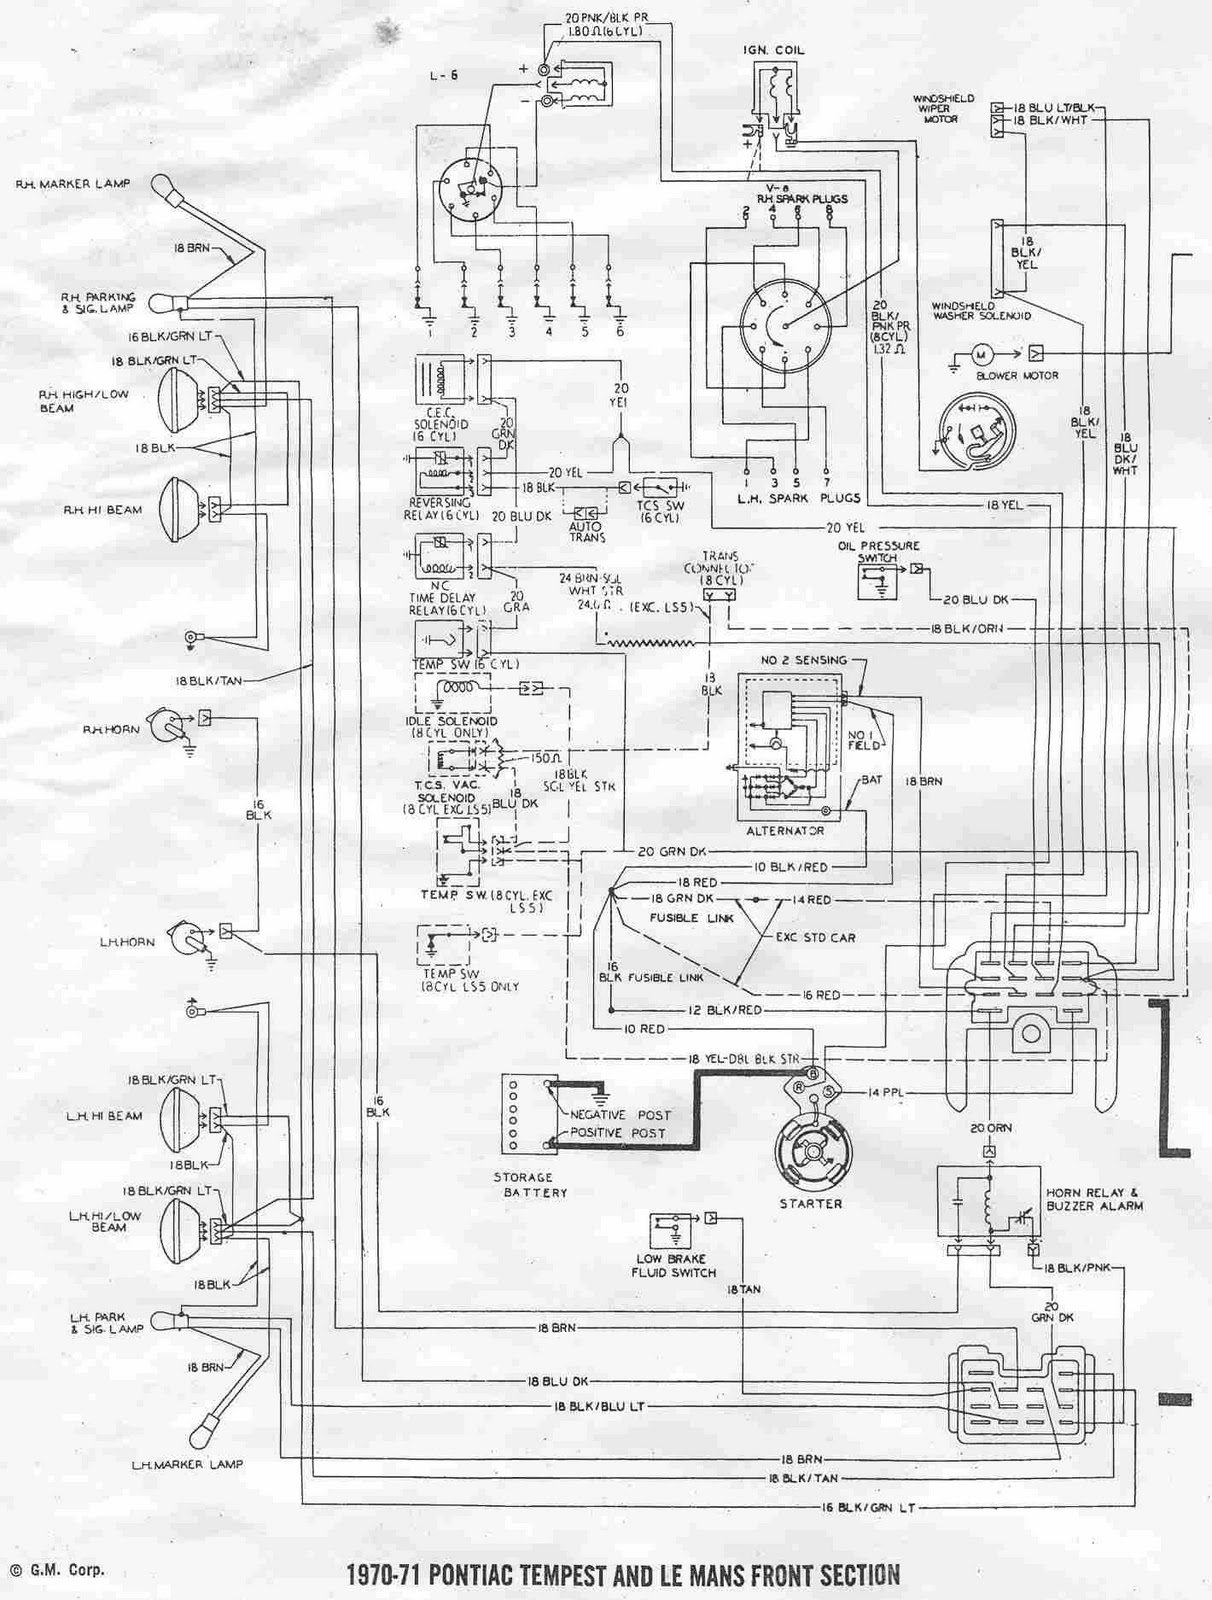 Location Of Blower Motor On A 1967 Firebird likewise 517069600938907574 together with Cadillac Charging Wiring Diagrams as well Schematics f in addition 1967 Mustang Wiring And Vacuum Diagrams. on 1966 ford ac system